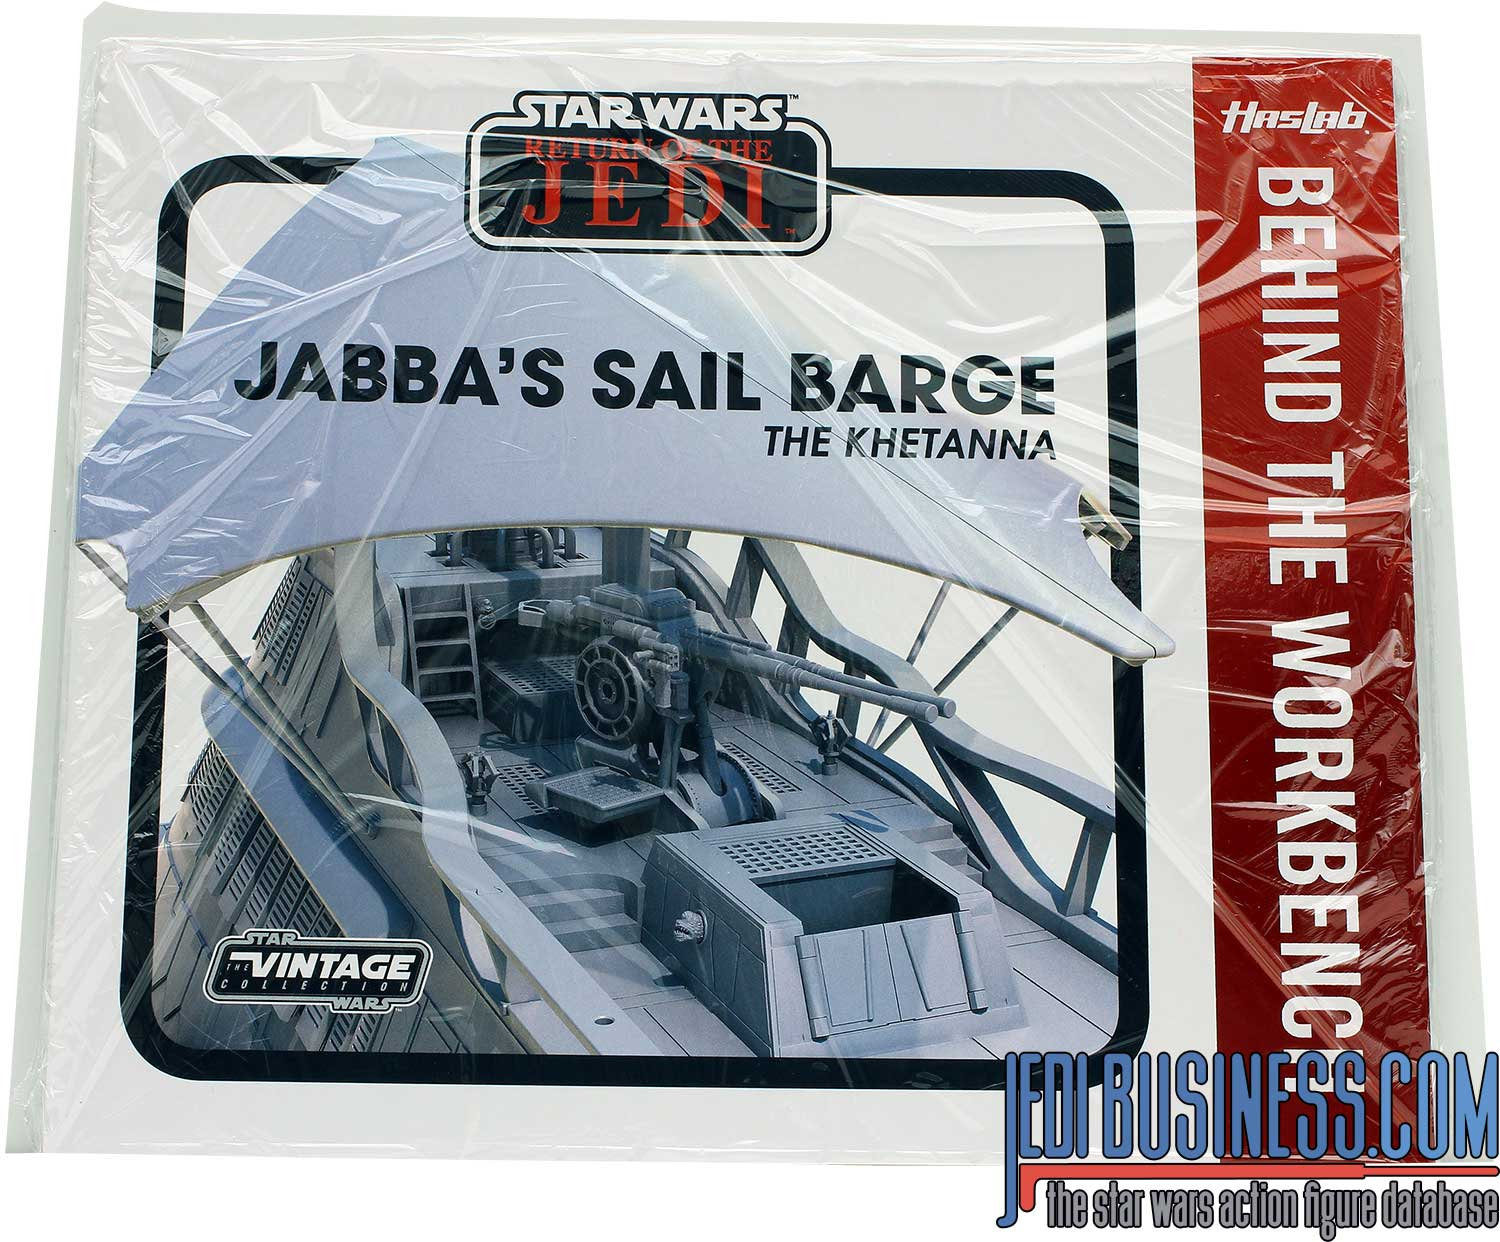 Sail Barge Behind The Workbench Booklet